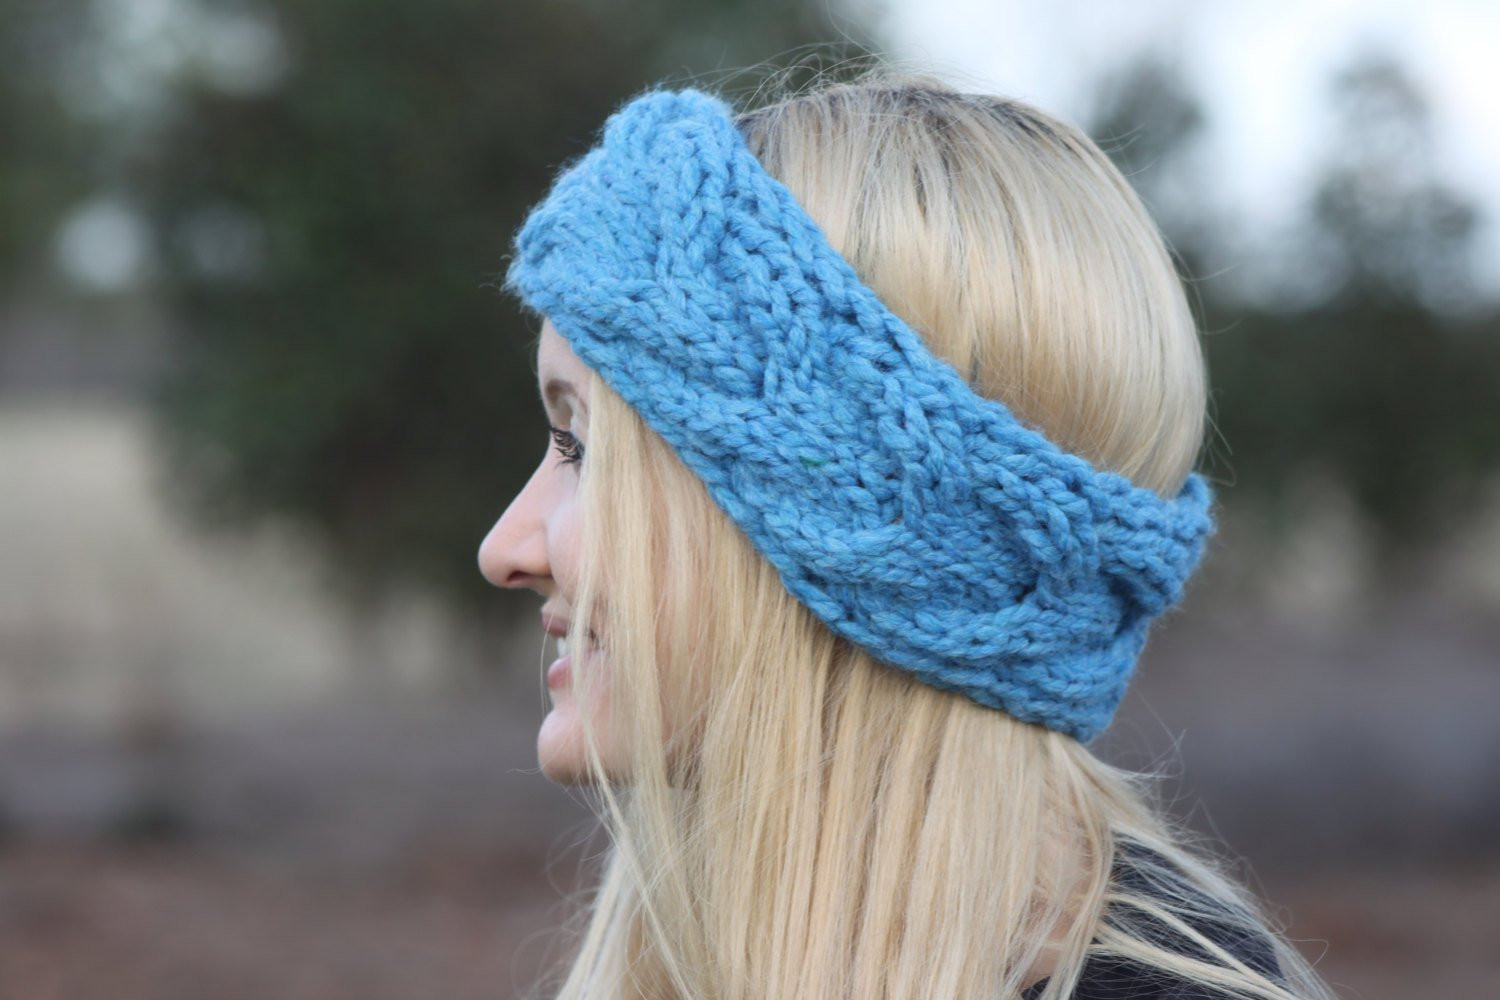 Luxury Knit Headband Pattern Cable Knit Pattern Ear Warmer Braided Knit Headband Of Amazing 42 Pics Braided Knit Headband